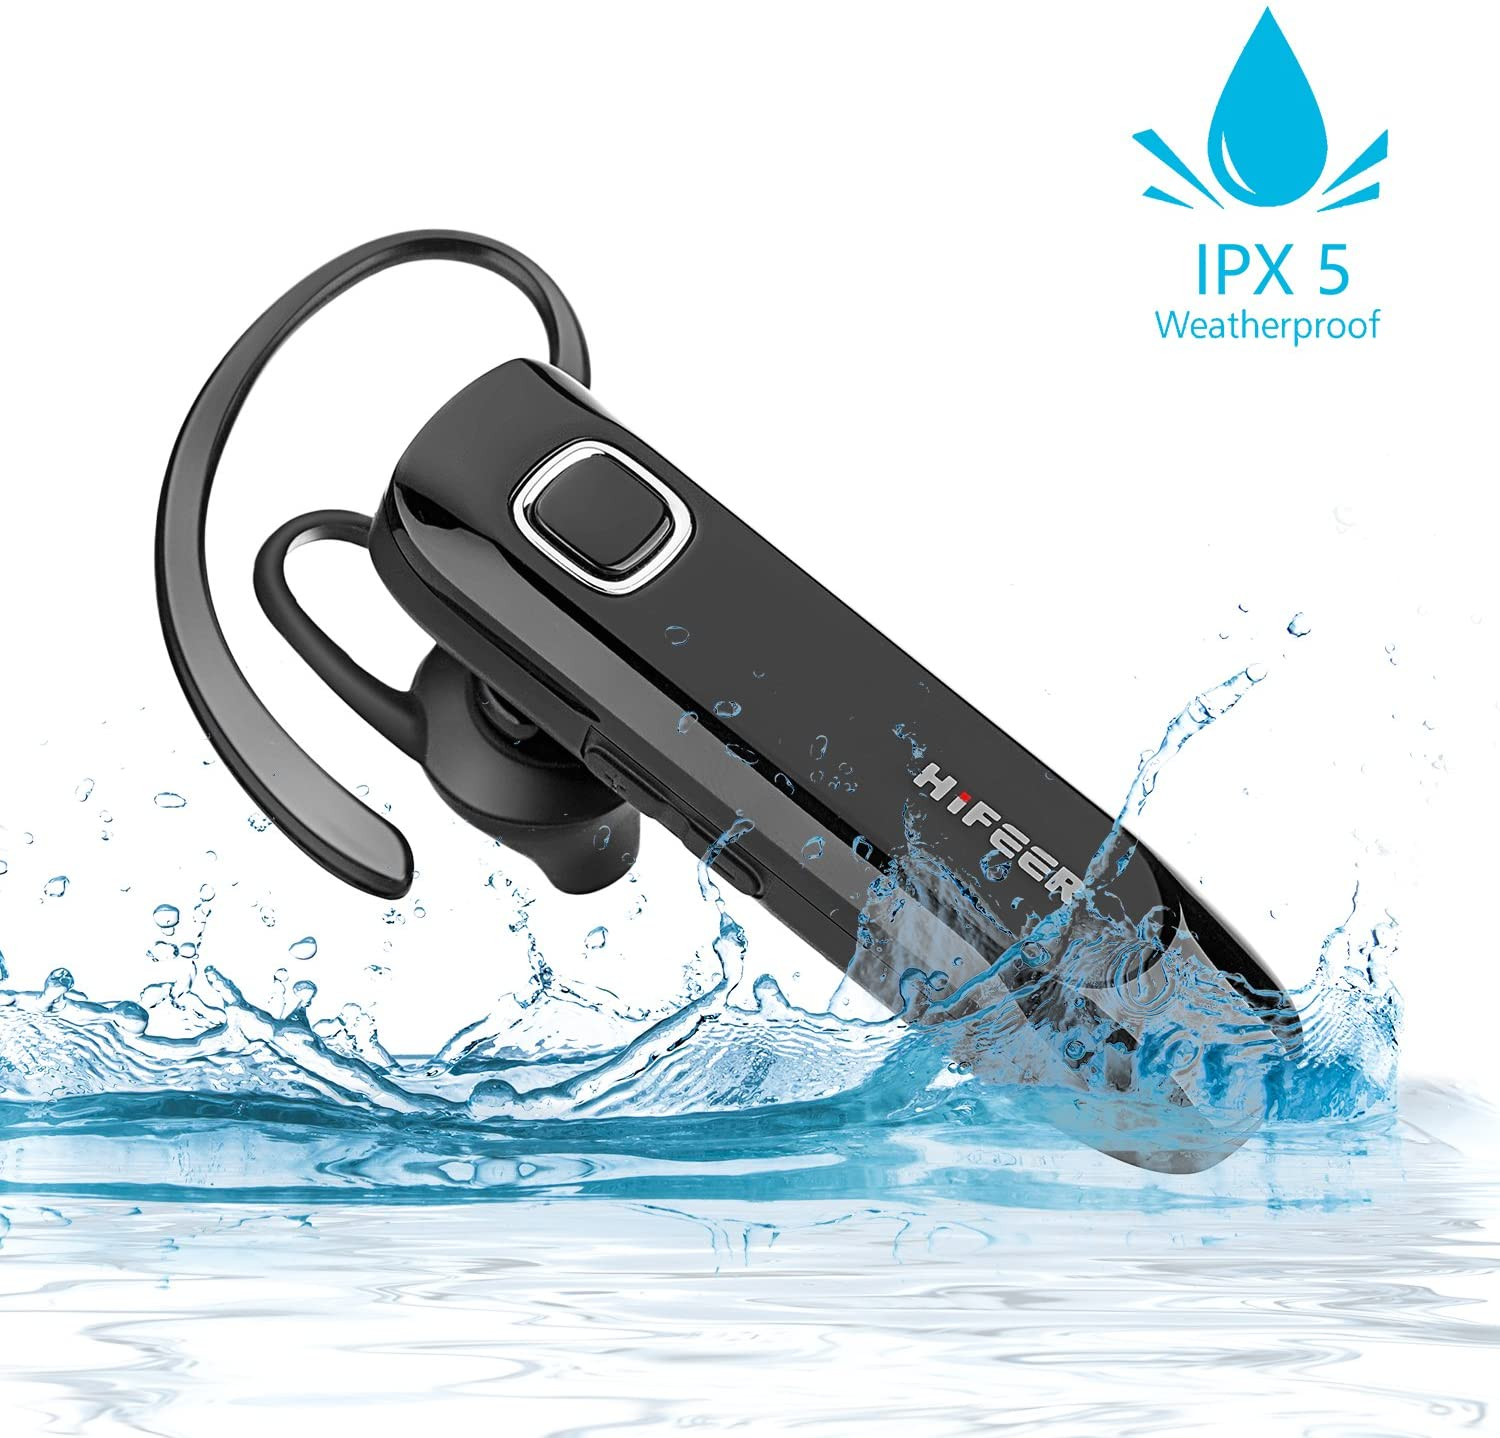 HIFEER Bluetooth Headset Waterproof Voice Command Wireless Bluetooth Earpiece with Noise Canceling Mic Hands Free for iPhone Android Samsung Cell Phone - Black